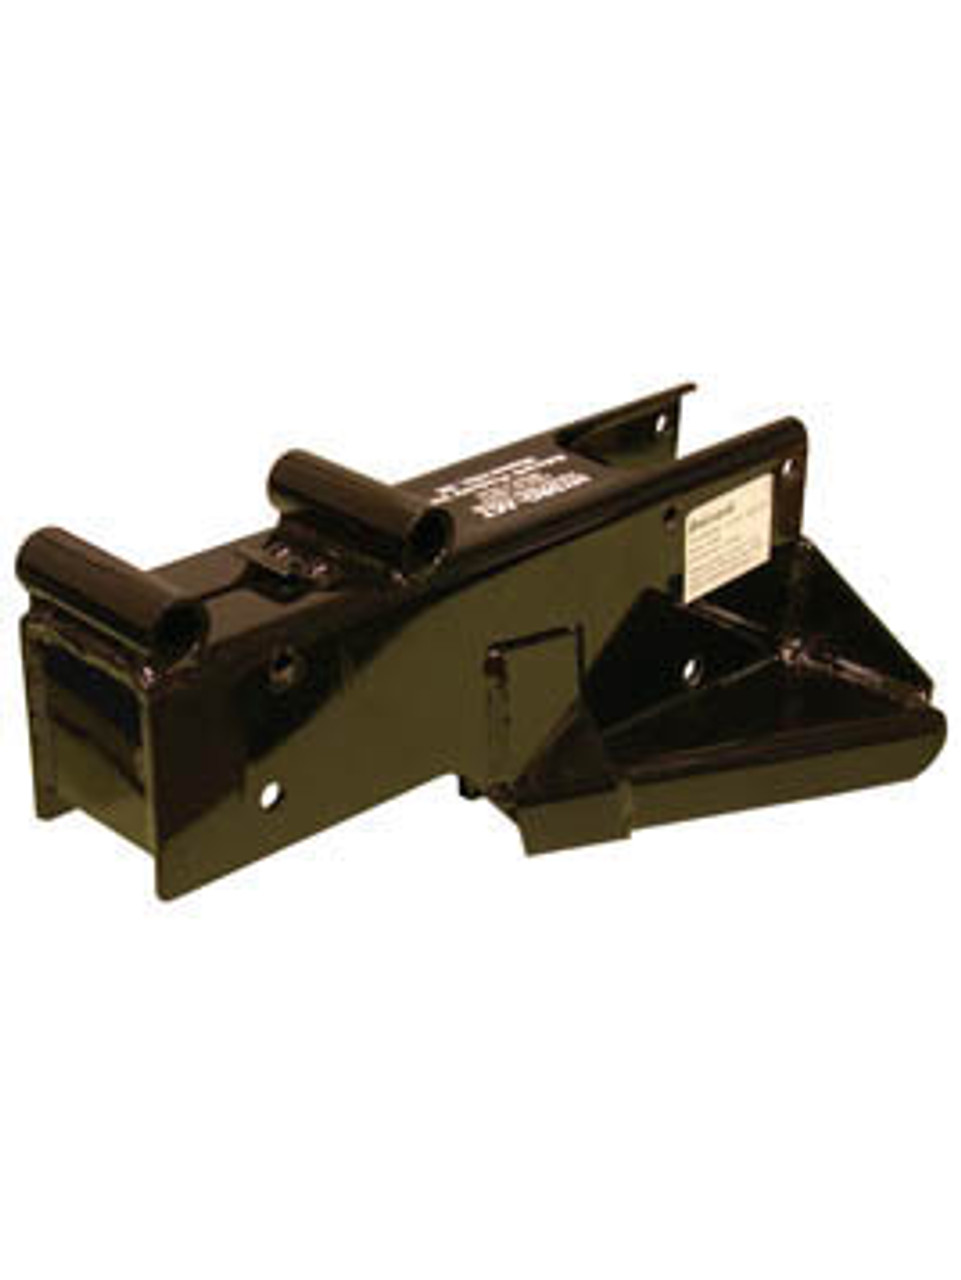 10601-1 --- Hydro-Act Actuator A-Frame Mount - 6,000 lbs